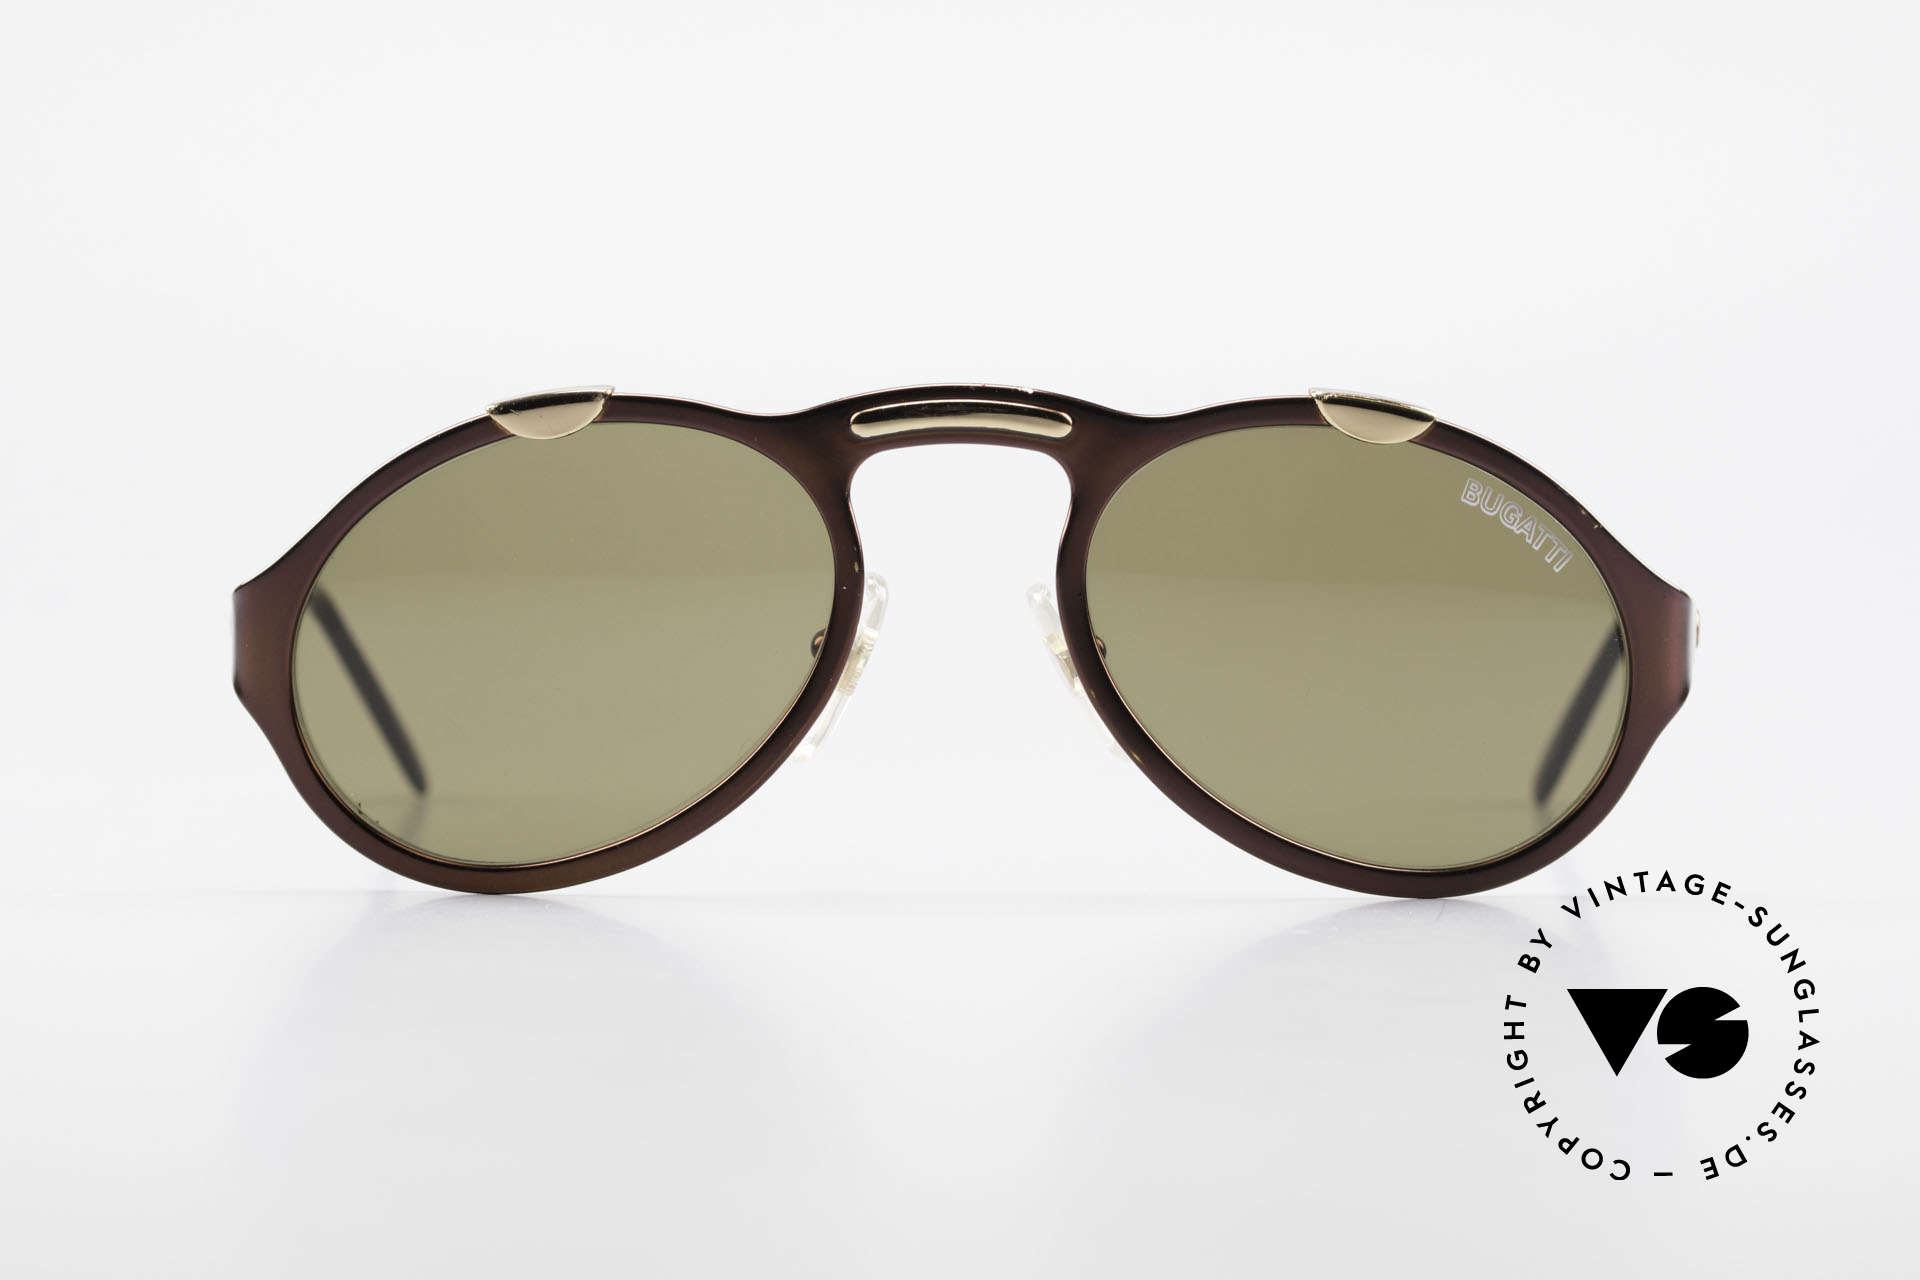 Bugatti 13169 Limited Old Collector's Sunglasses, rare brown-metallic varnish, made around 1995/96, Made for Men